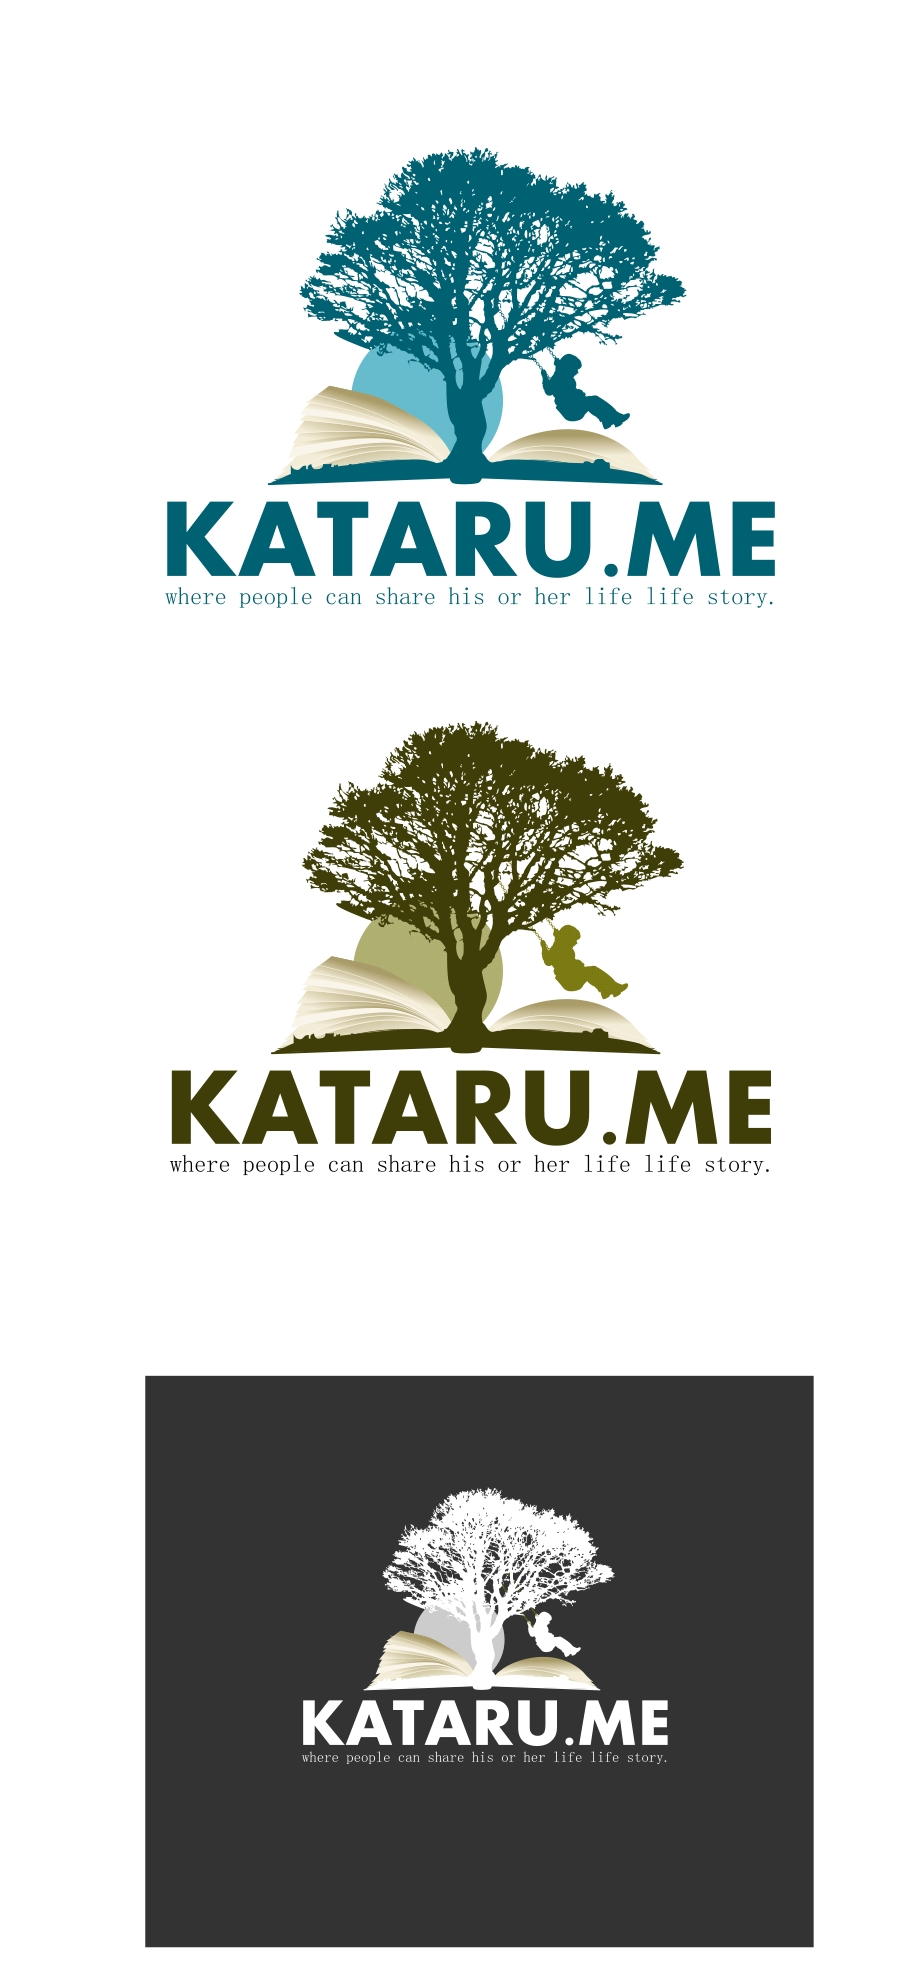 Logo Design by Private User - Entry No. 12 in the Logo Design Contest Inspiring Logo Design for KATARU.ME.